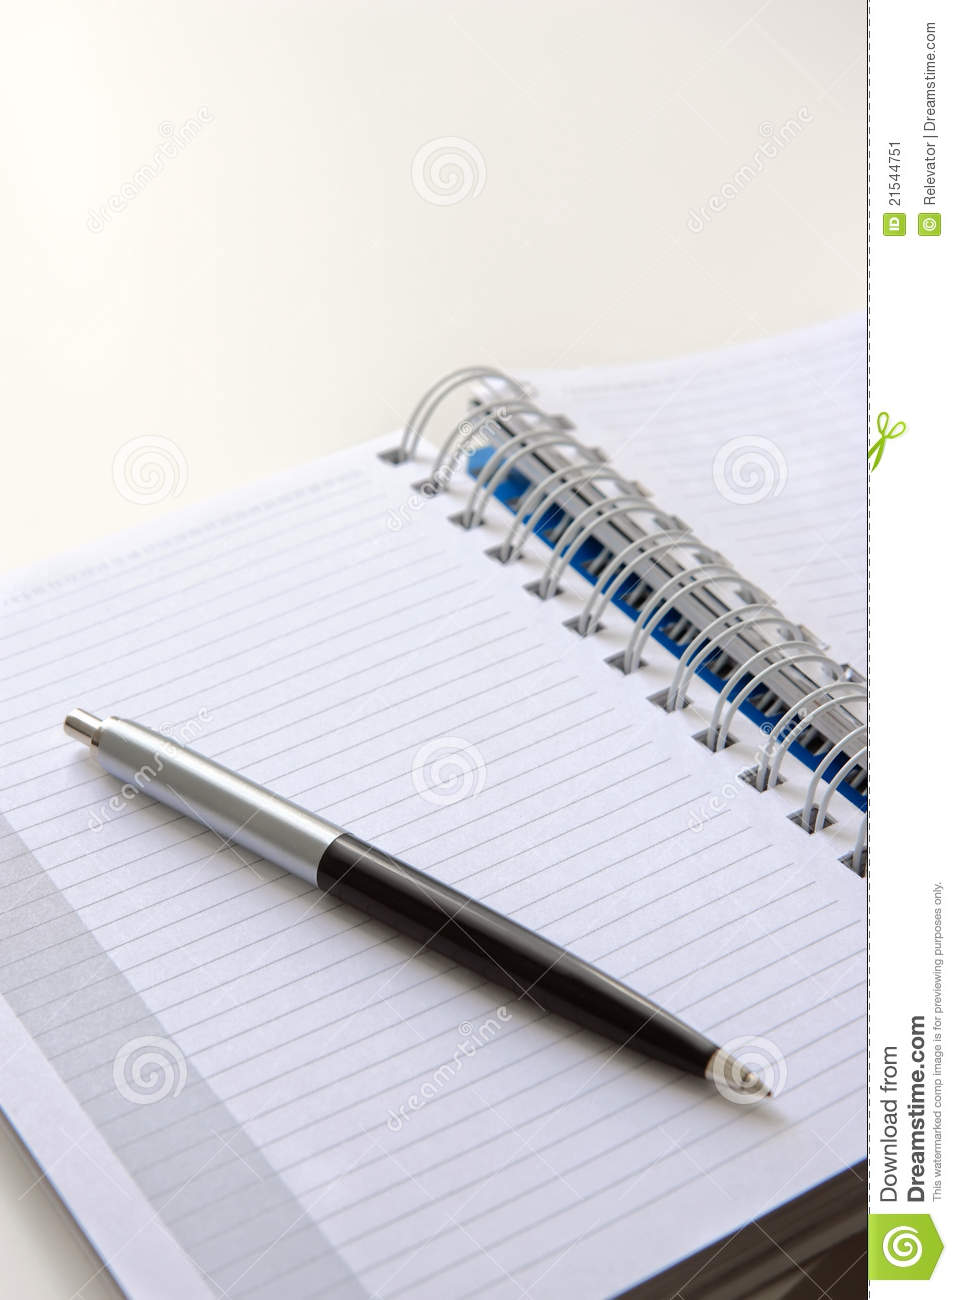 Download Pen and notebook stock image. Image of letter, sheet - 21544751